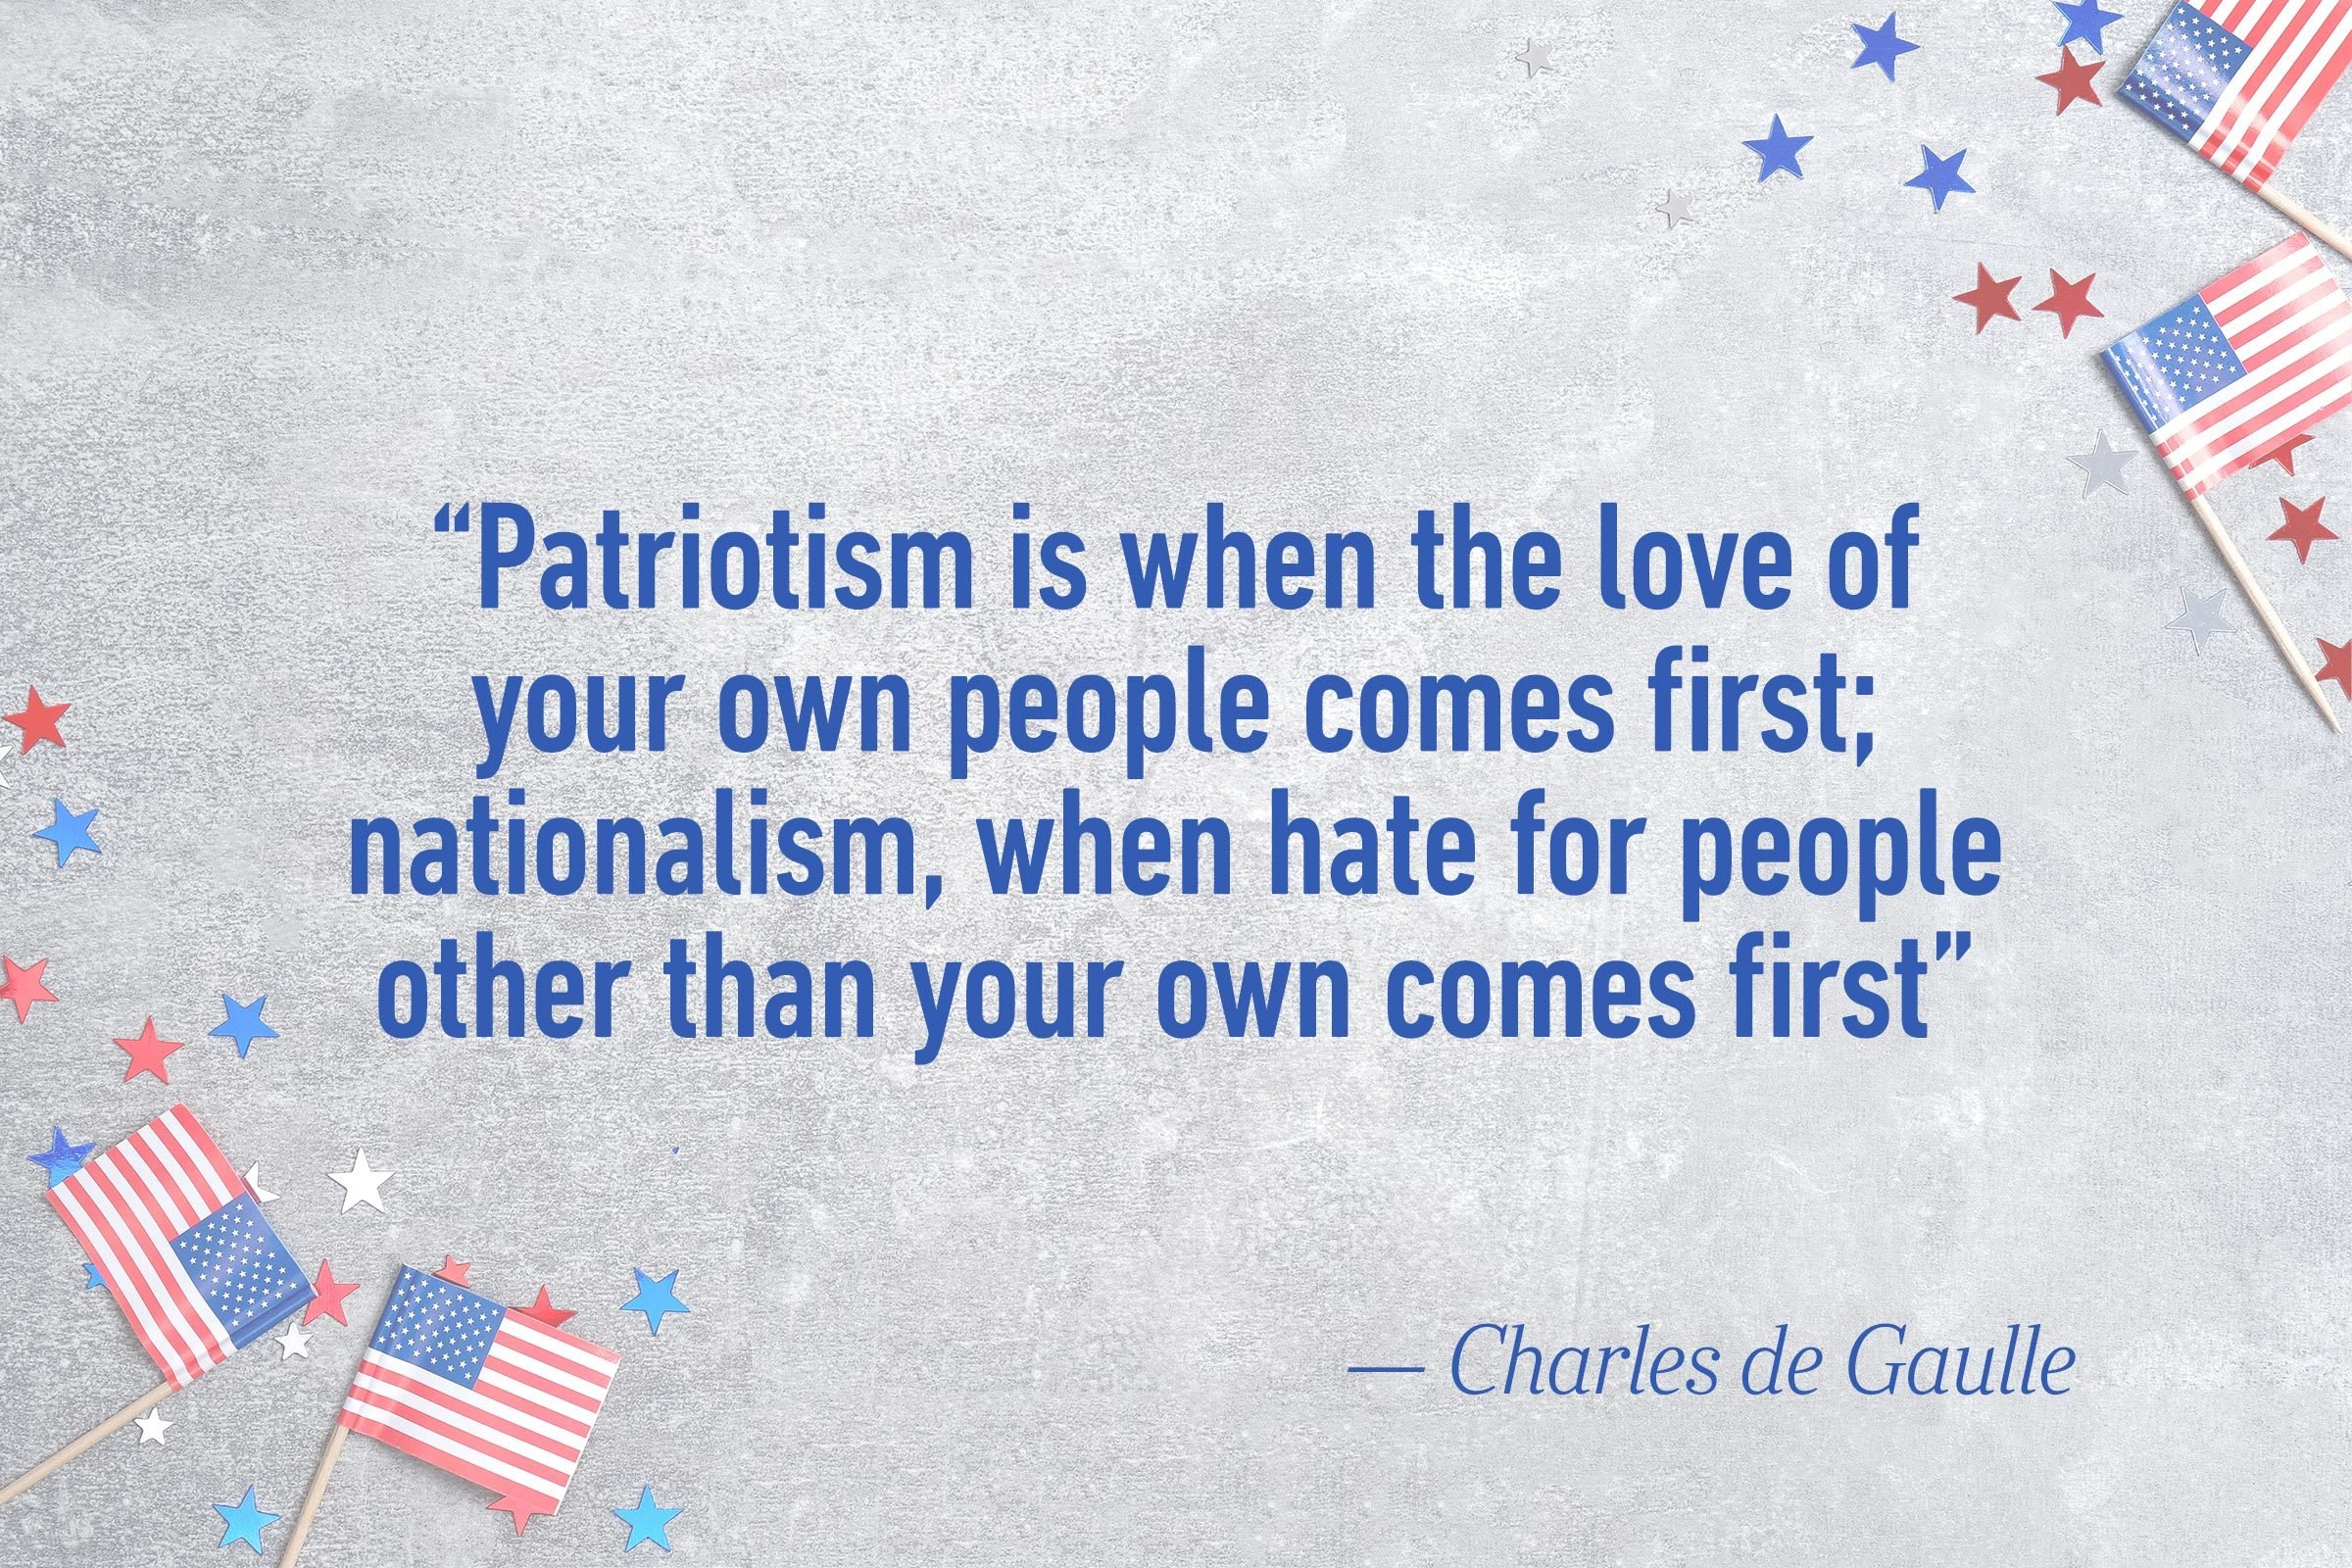 """Patriotism is when the love of your own people comes first; nationalism, when hate for people other than your own comes first.""—Charles de Gaulle"